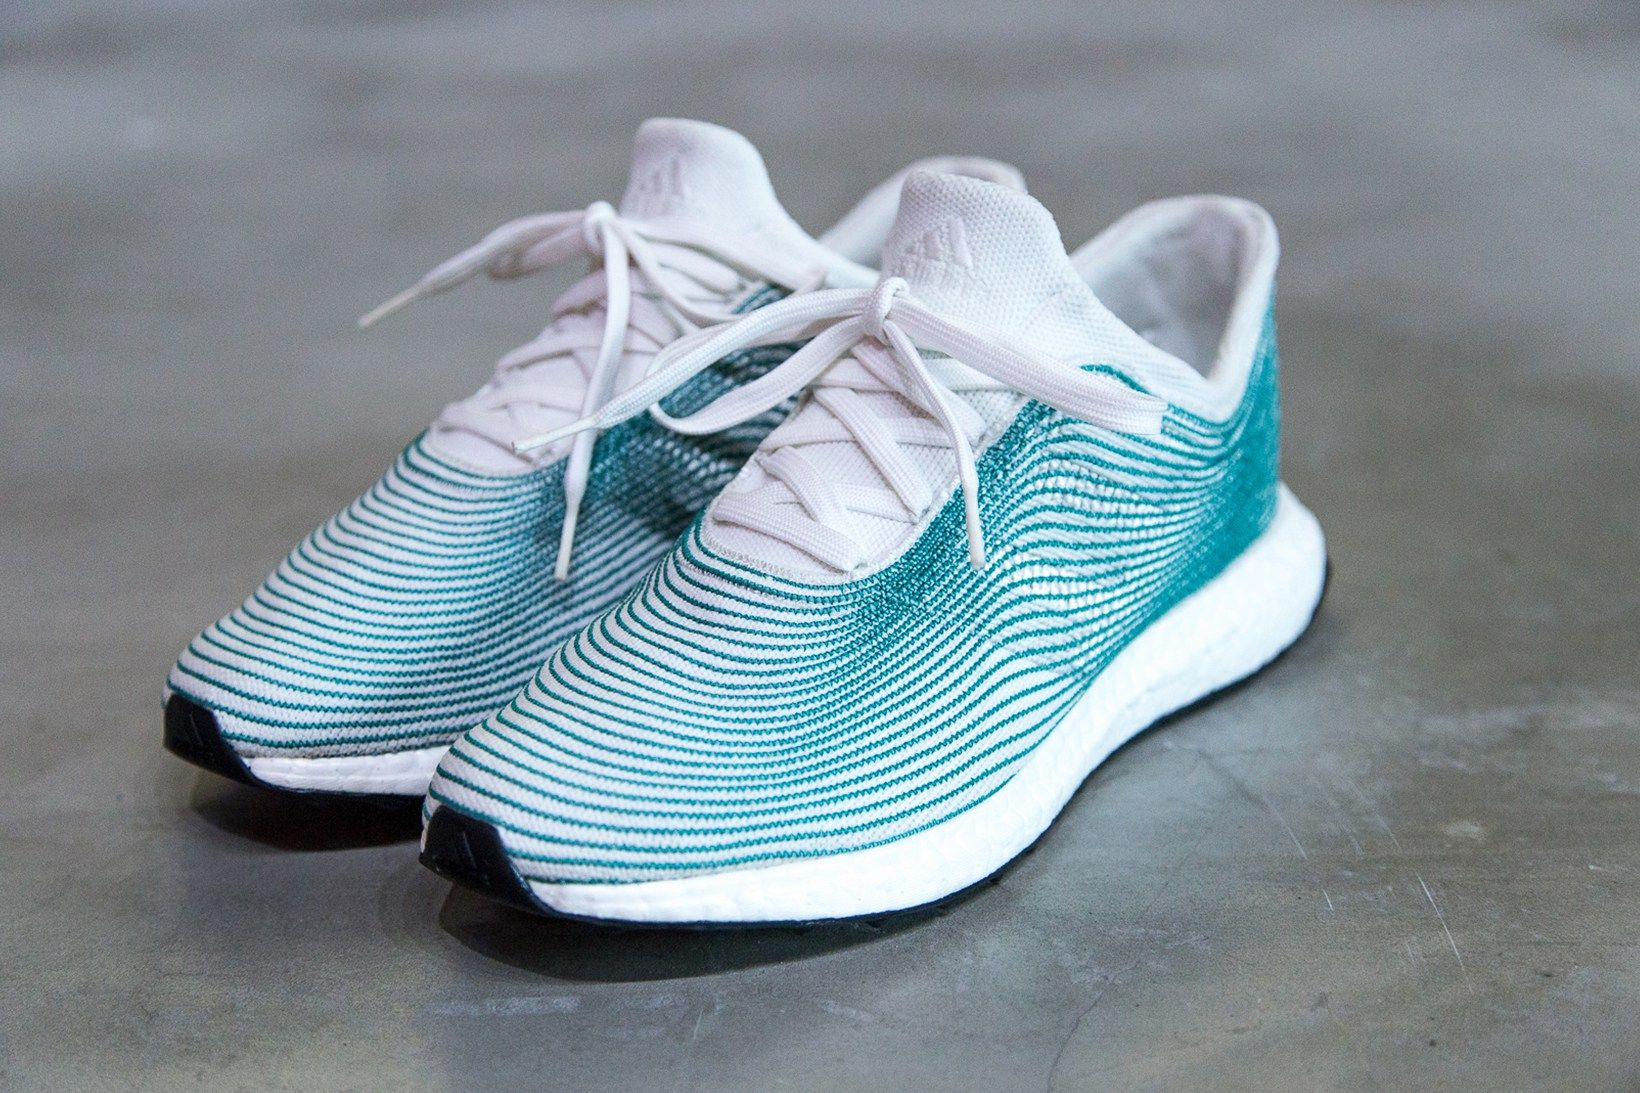 pretty nice 630fe a38bf Closer Look at adidas Parley Sustainable Shoe